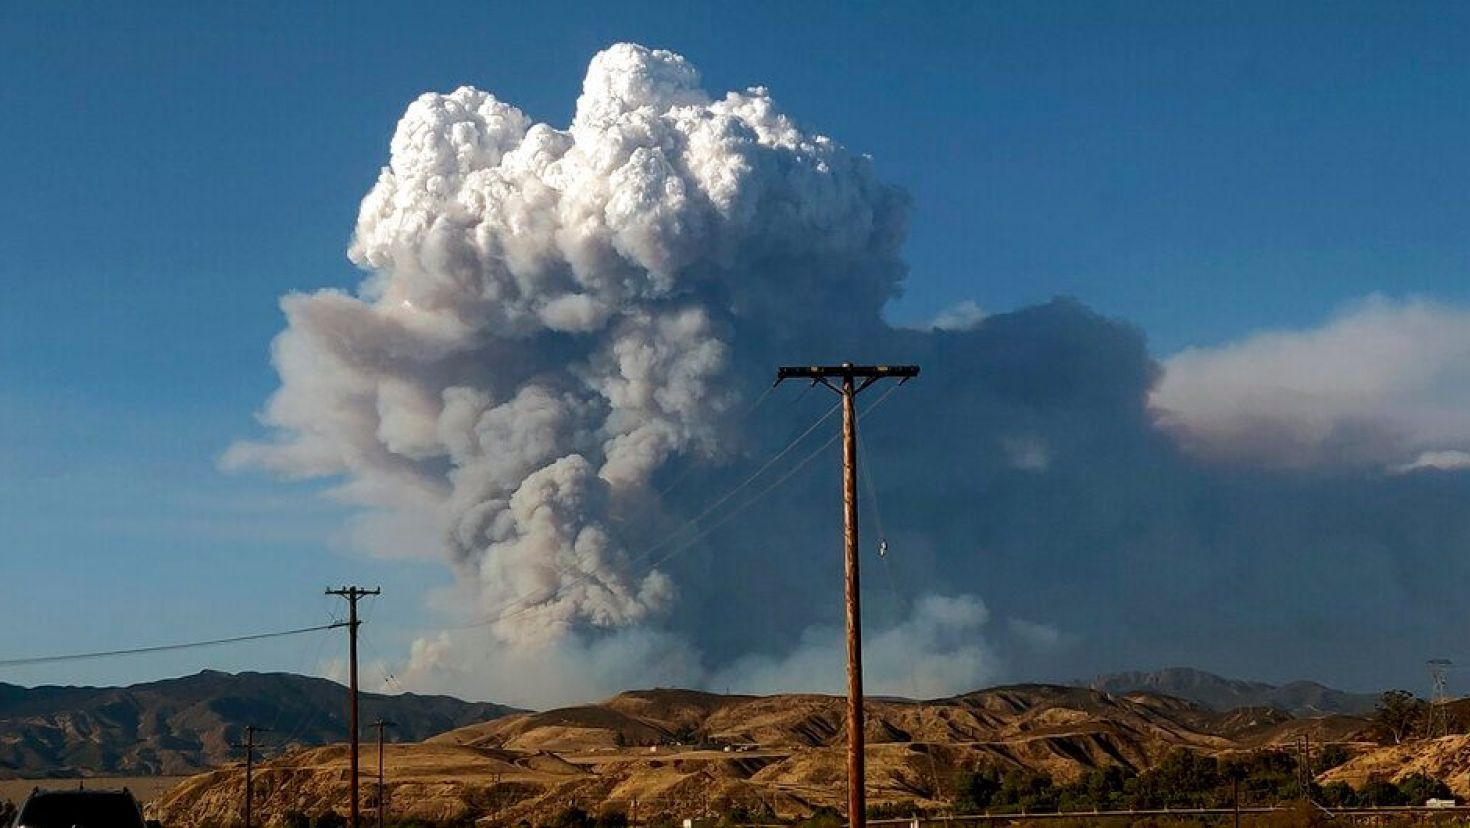 Massive California Brush Fire Erupts Near Angeles National Forest In 2020 California Wildfires Lake Us Forest Service